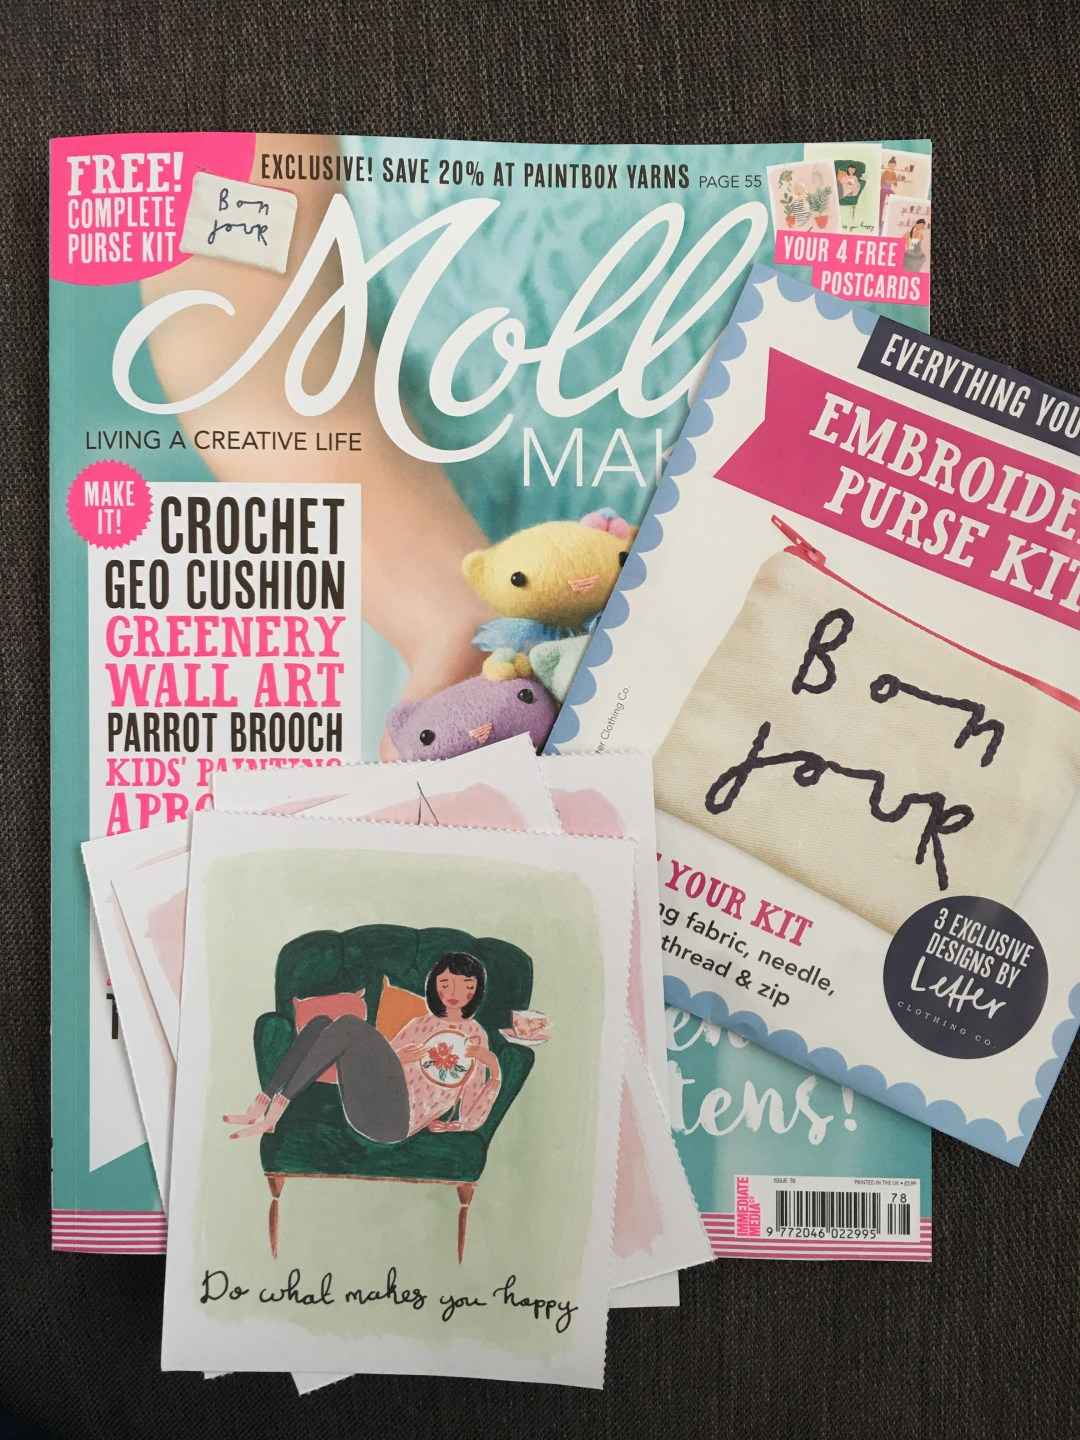 Mollie Makes Embroidery Purse Kit